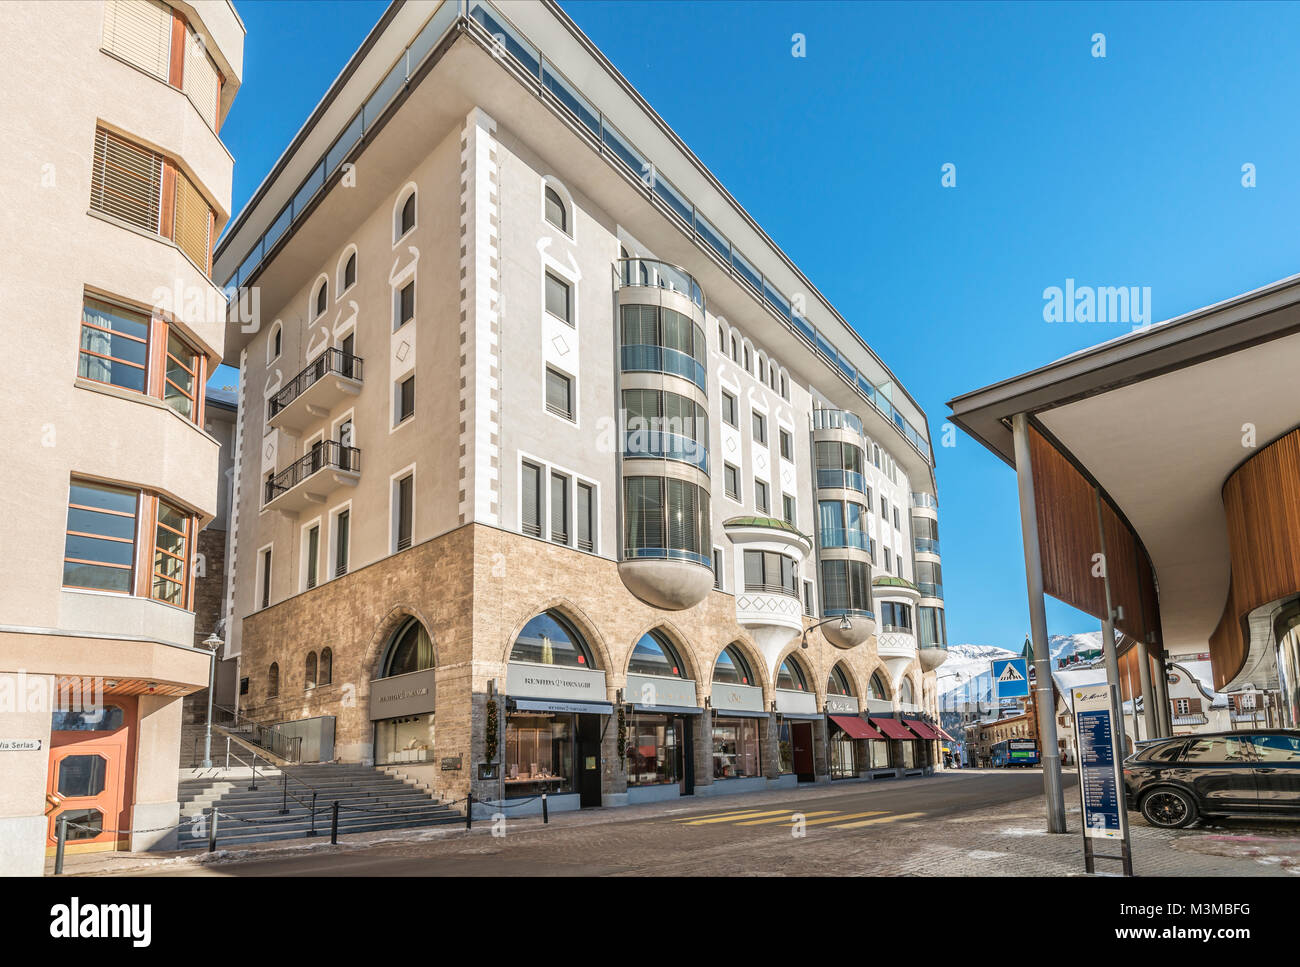 Architecture at the town center of St.Moritz, Grisons, Switzerland | Architektur im Stadtzentrum von St.Moritz Dorf, Stock Photo